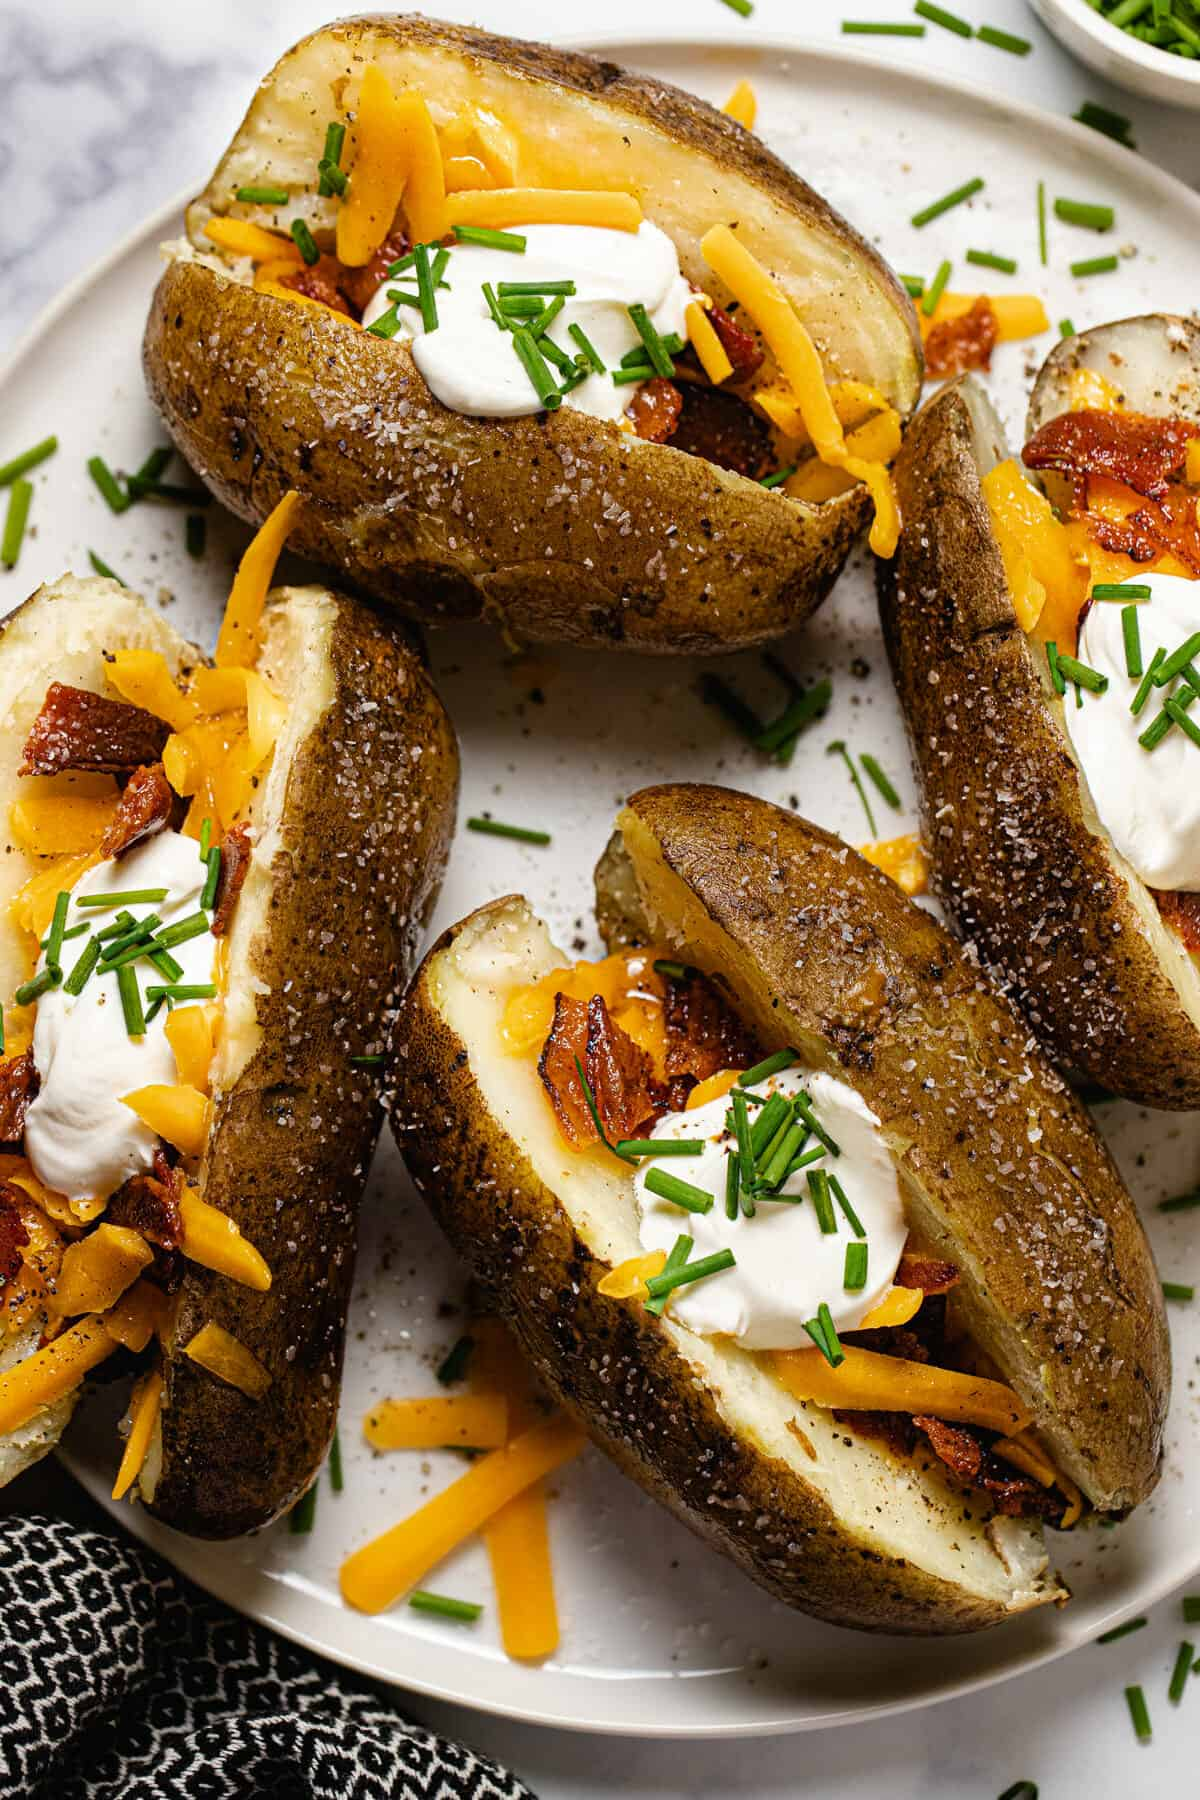 White plate with four loaded baked potatoes garnished with chives